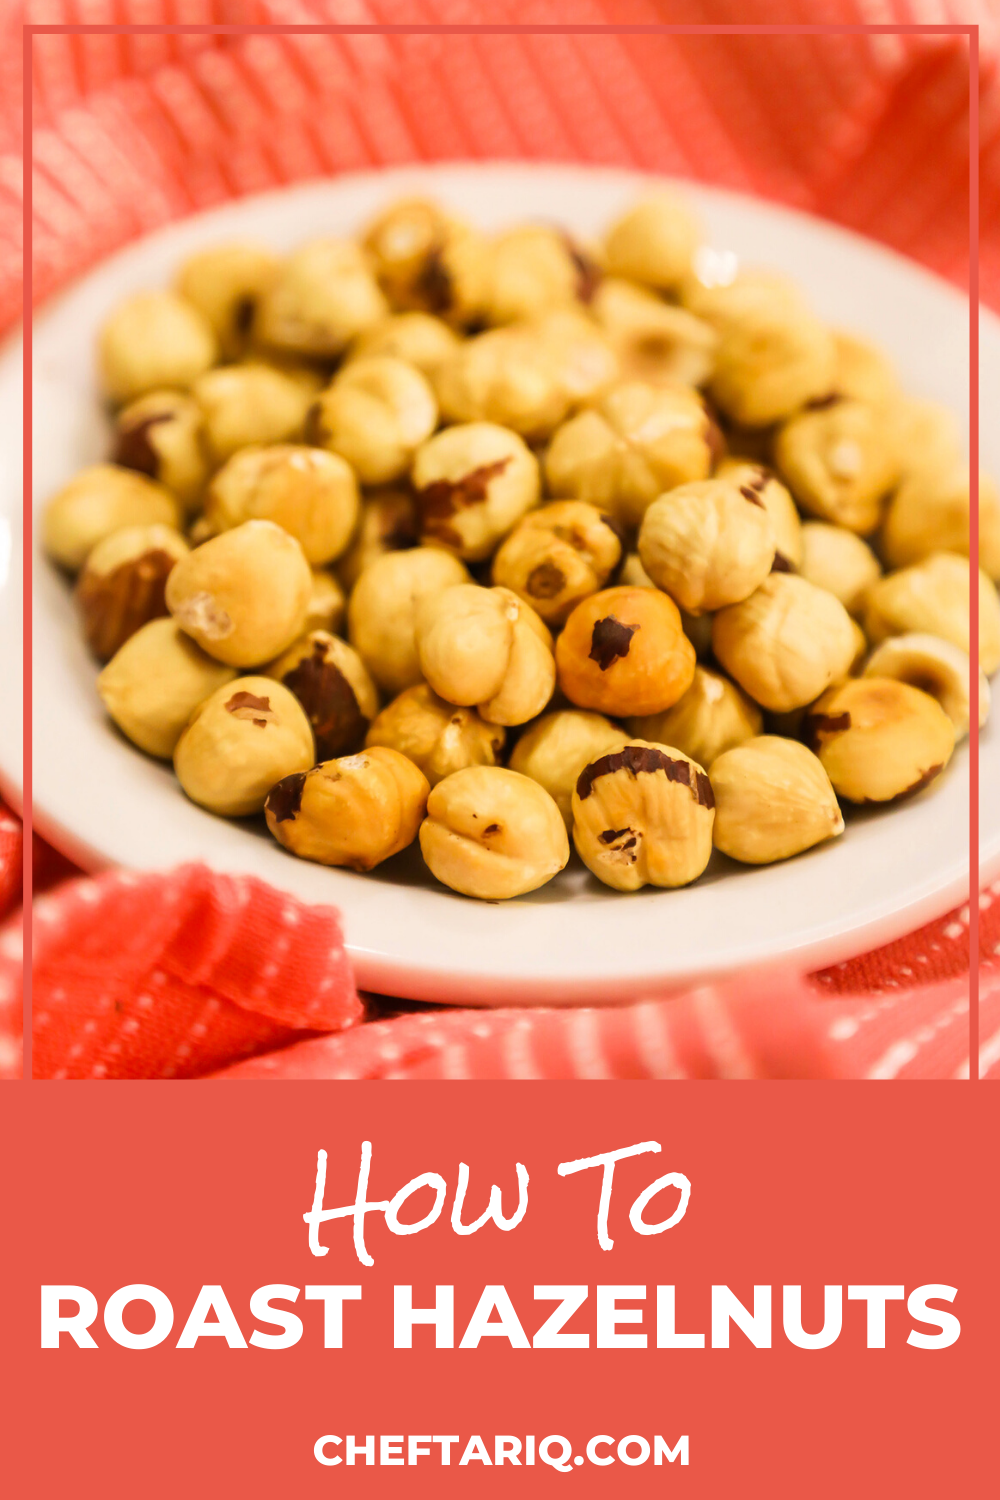 How To Roast Hazelnuts With Ease Quick Guide Chef Tariq Recipe How To Roast Hazelnuts Hazelnut Recipes Roast